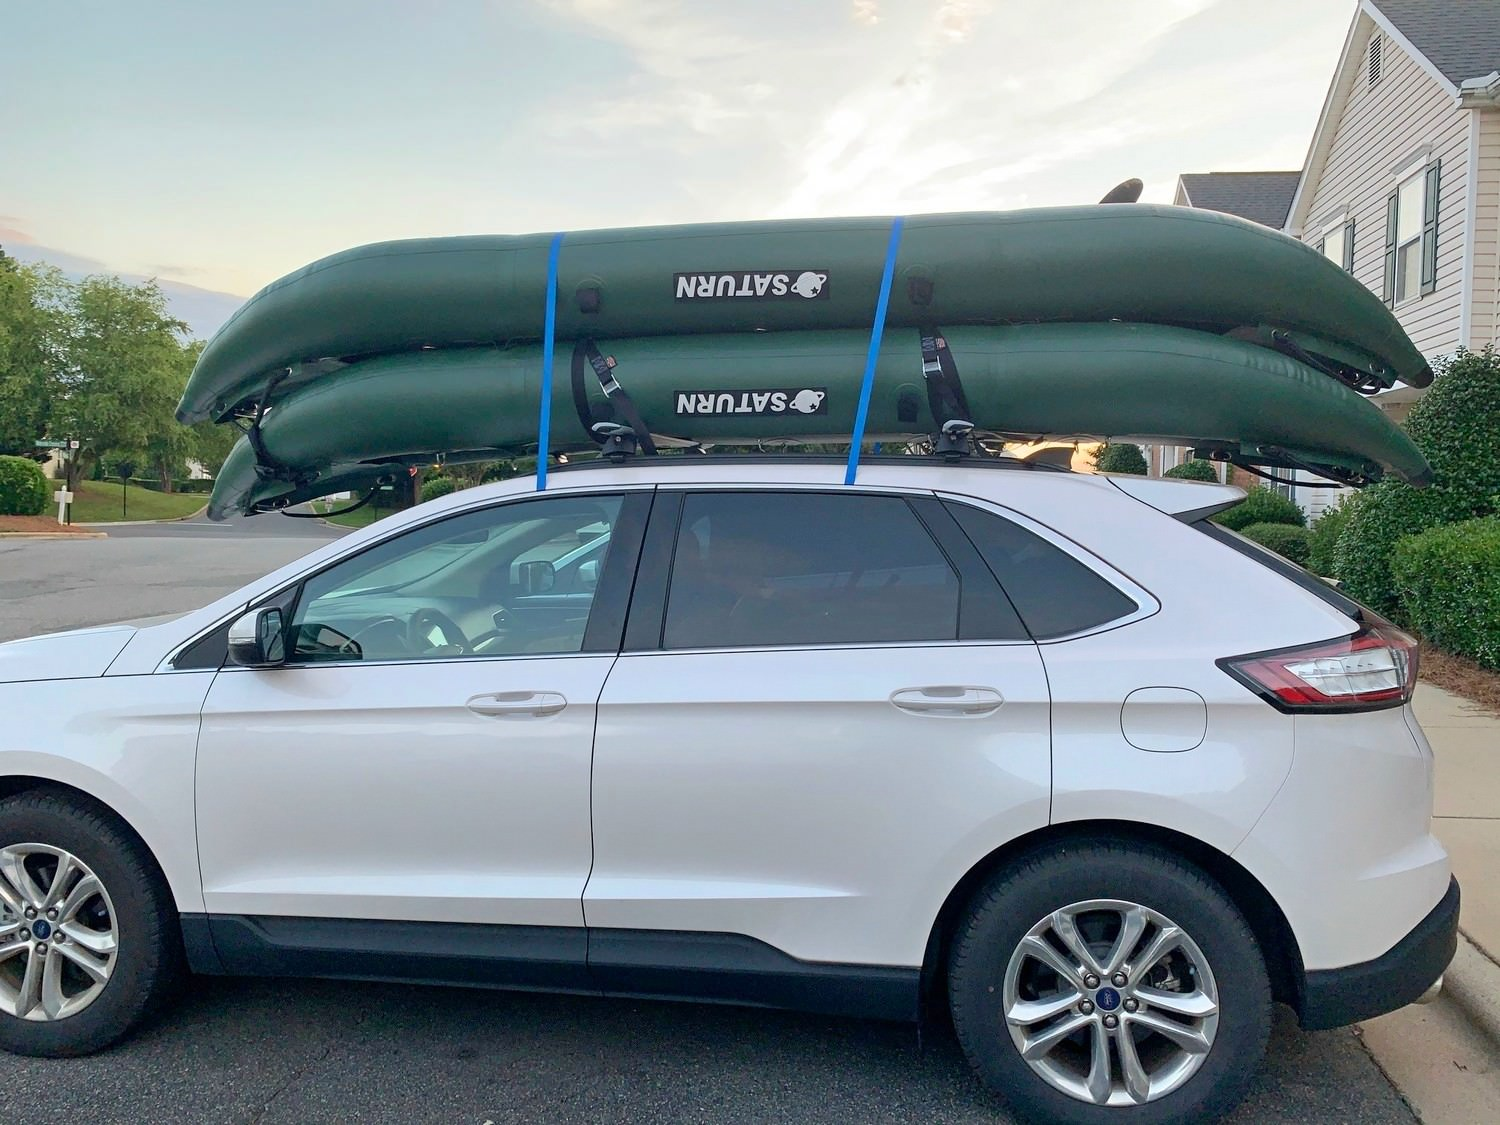 2 Kayaks loaded on top of car